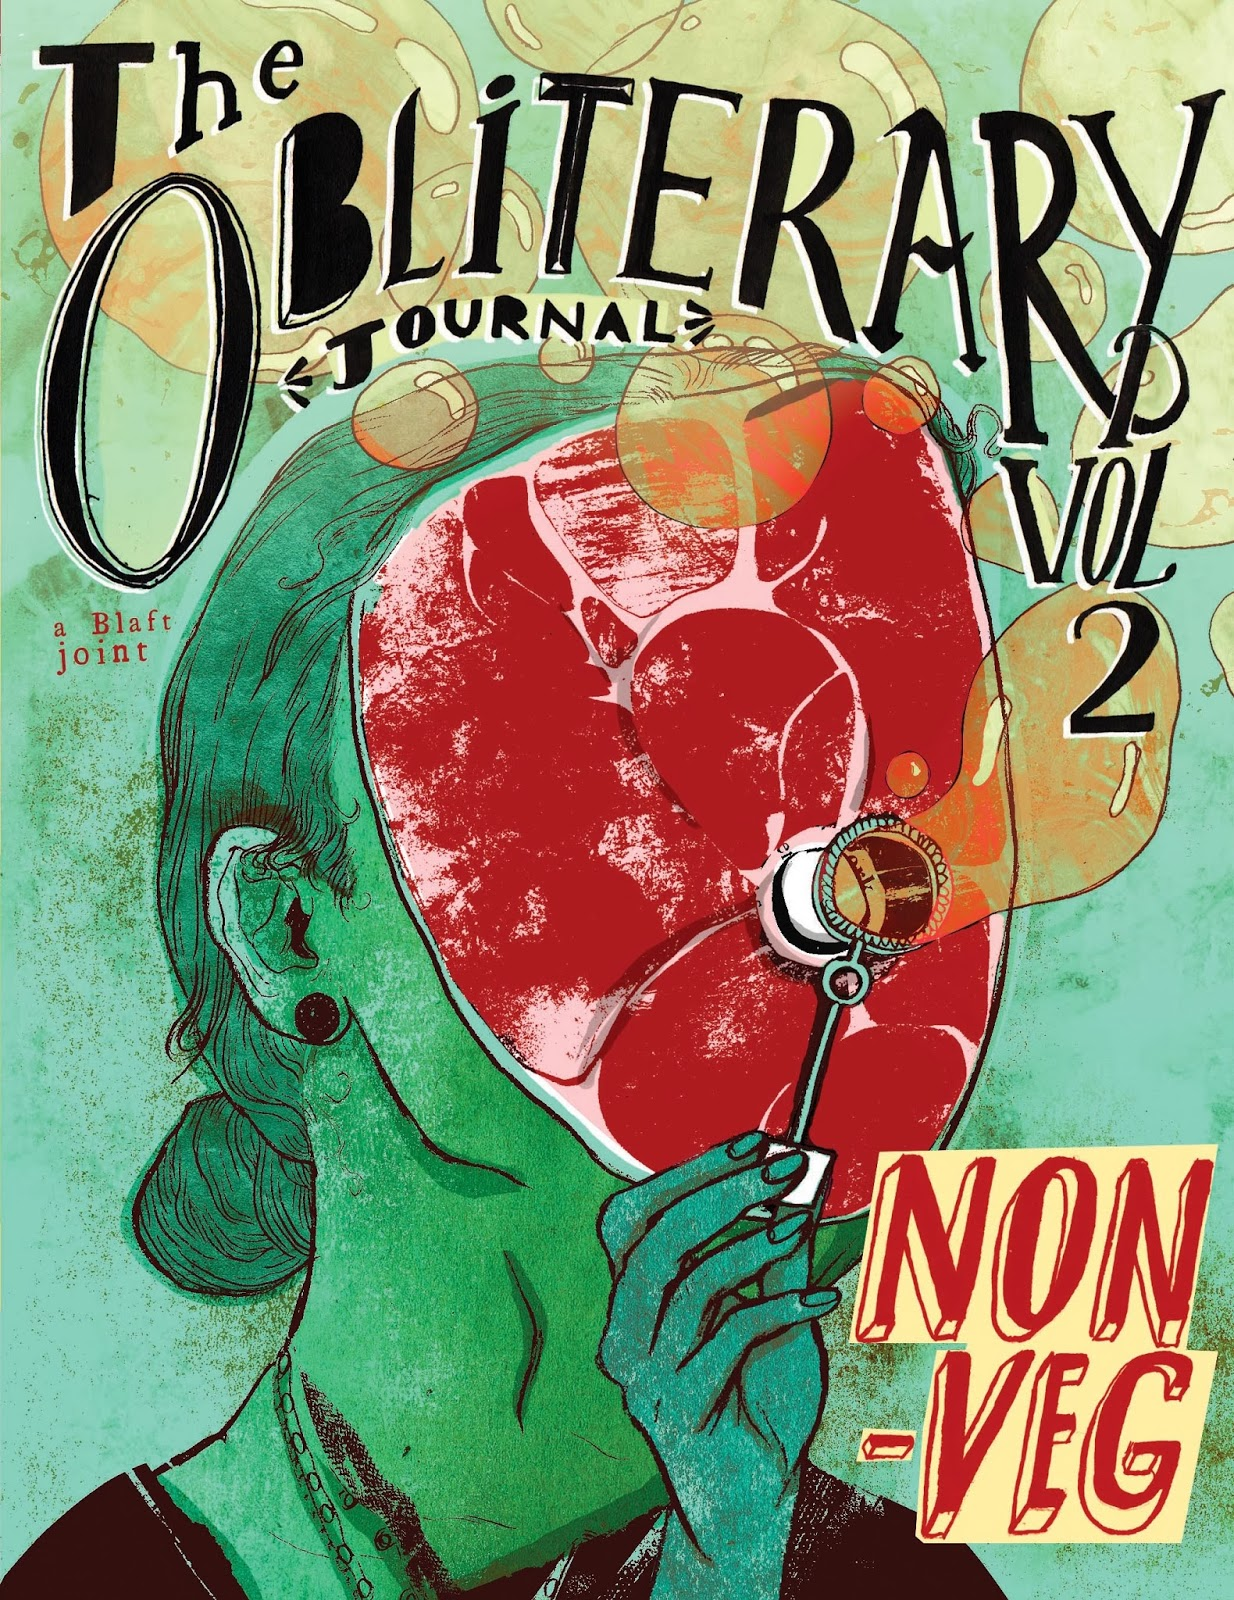 Coming Soon: The Obliterary Journal, Vol. 2